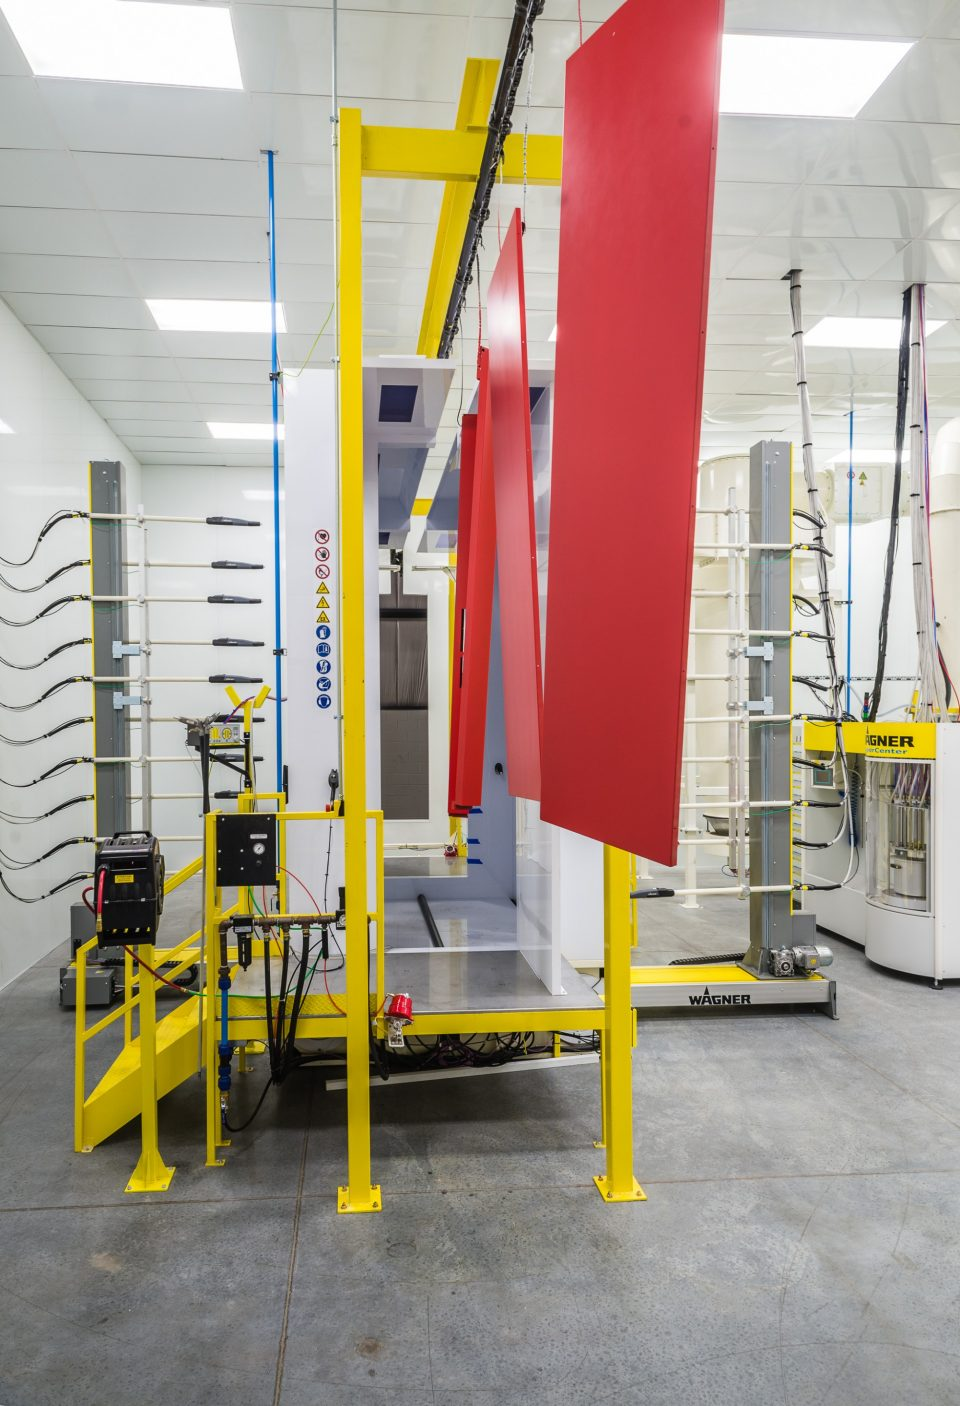 Schindler Elevator Hanover Components   Fabrication Of Components Visible  To Customers, Such As Doors,